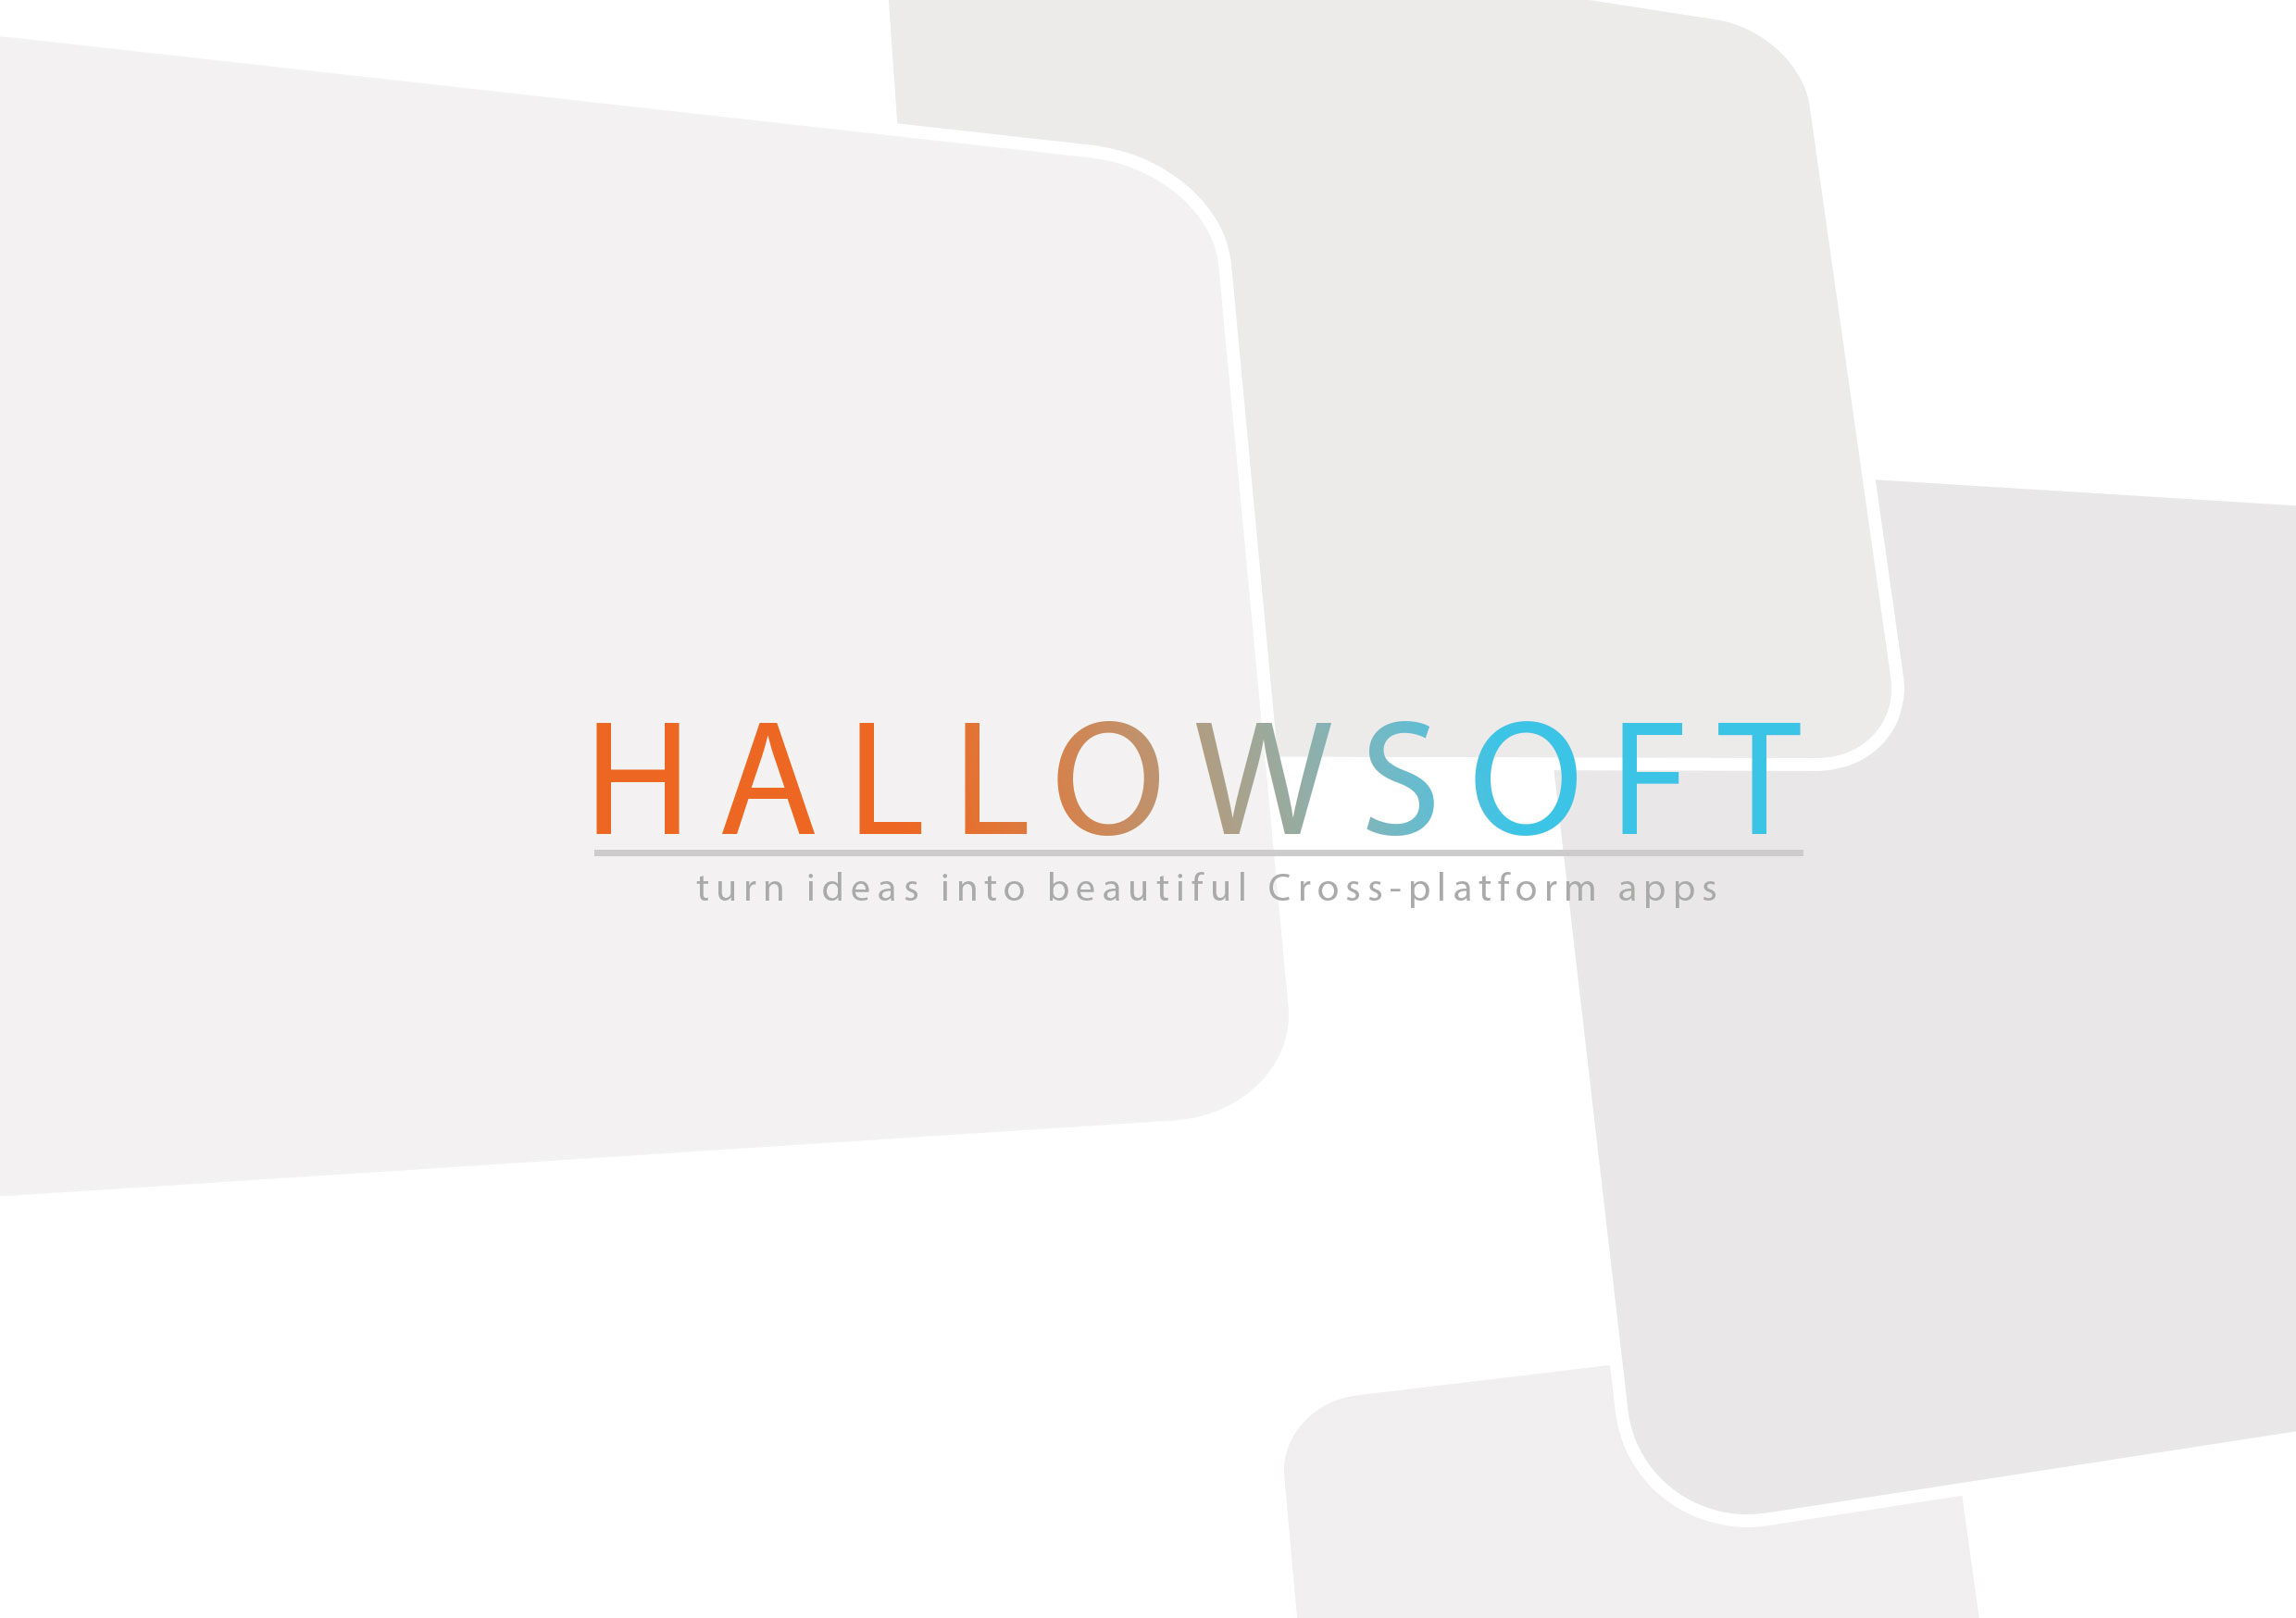 hallowsoft Iranian Food Order Service